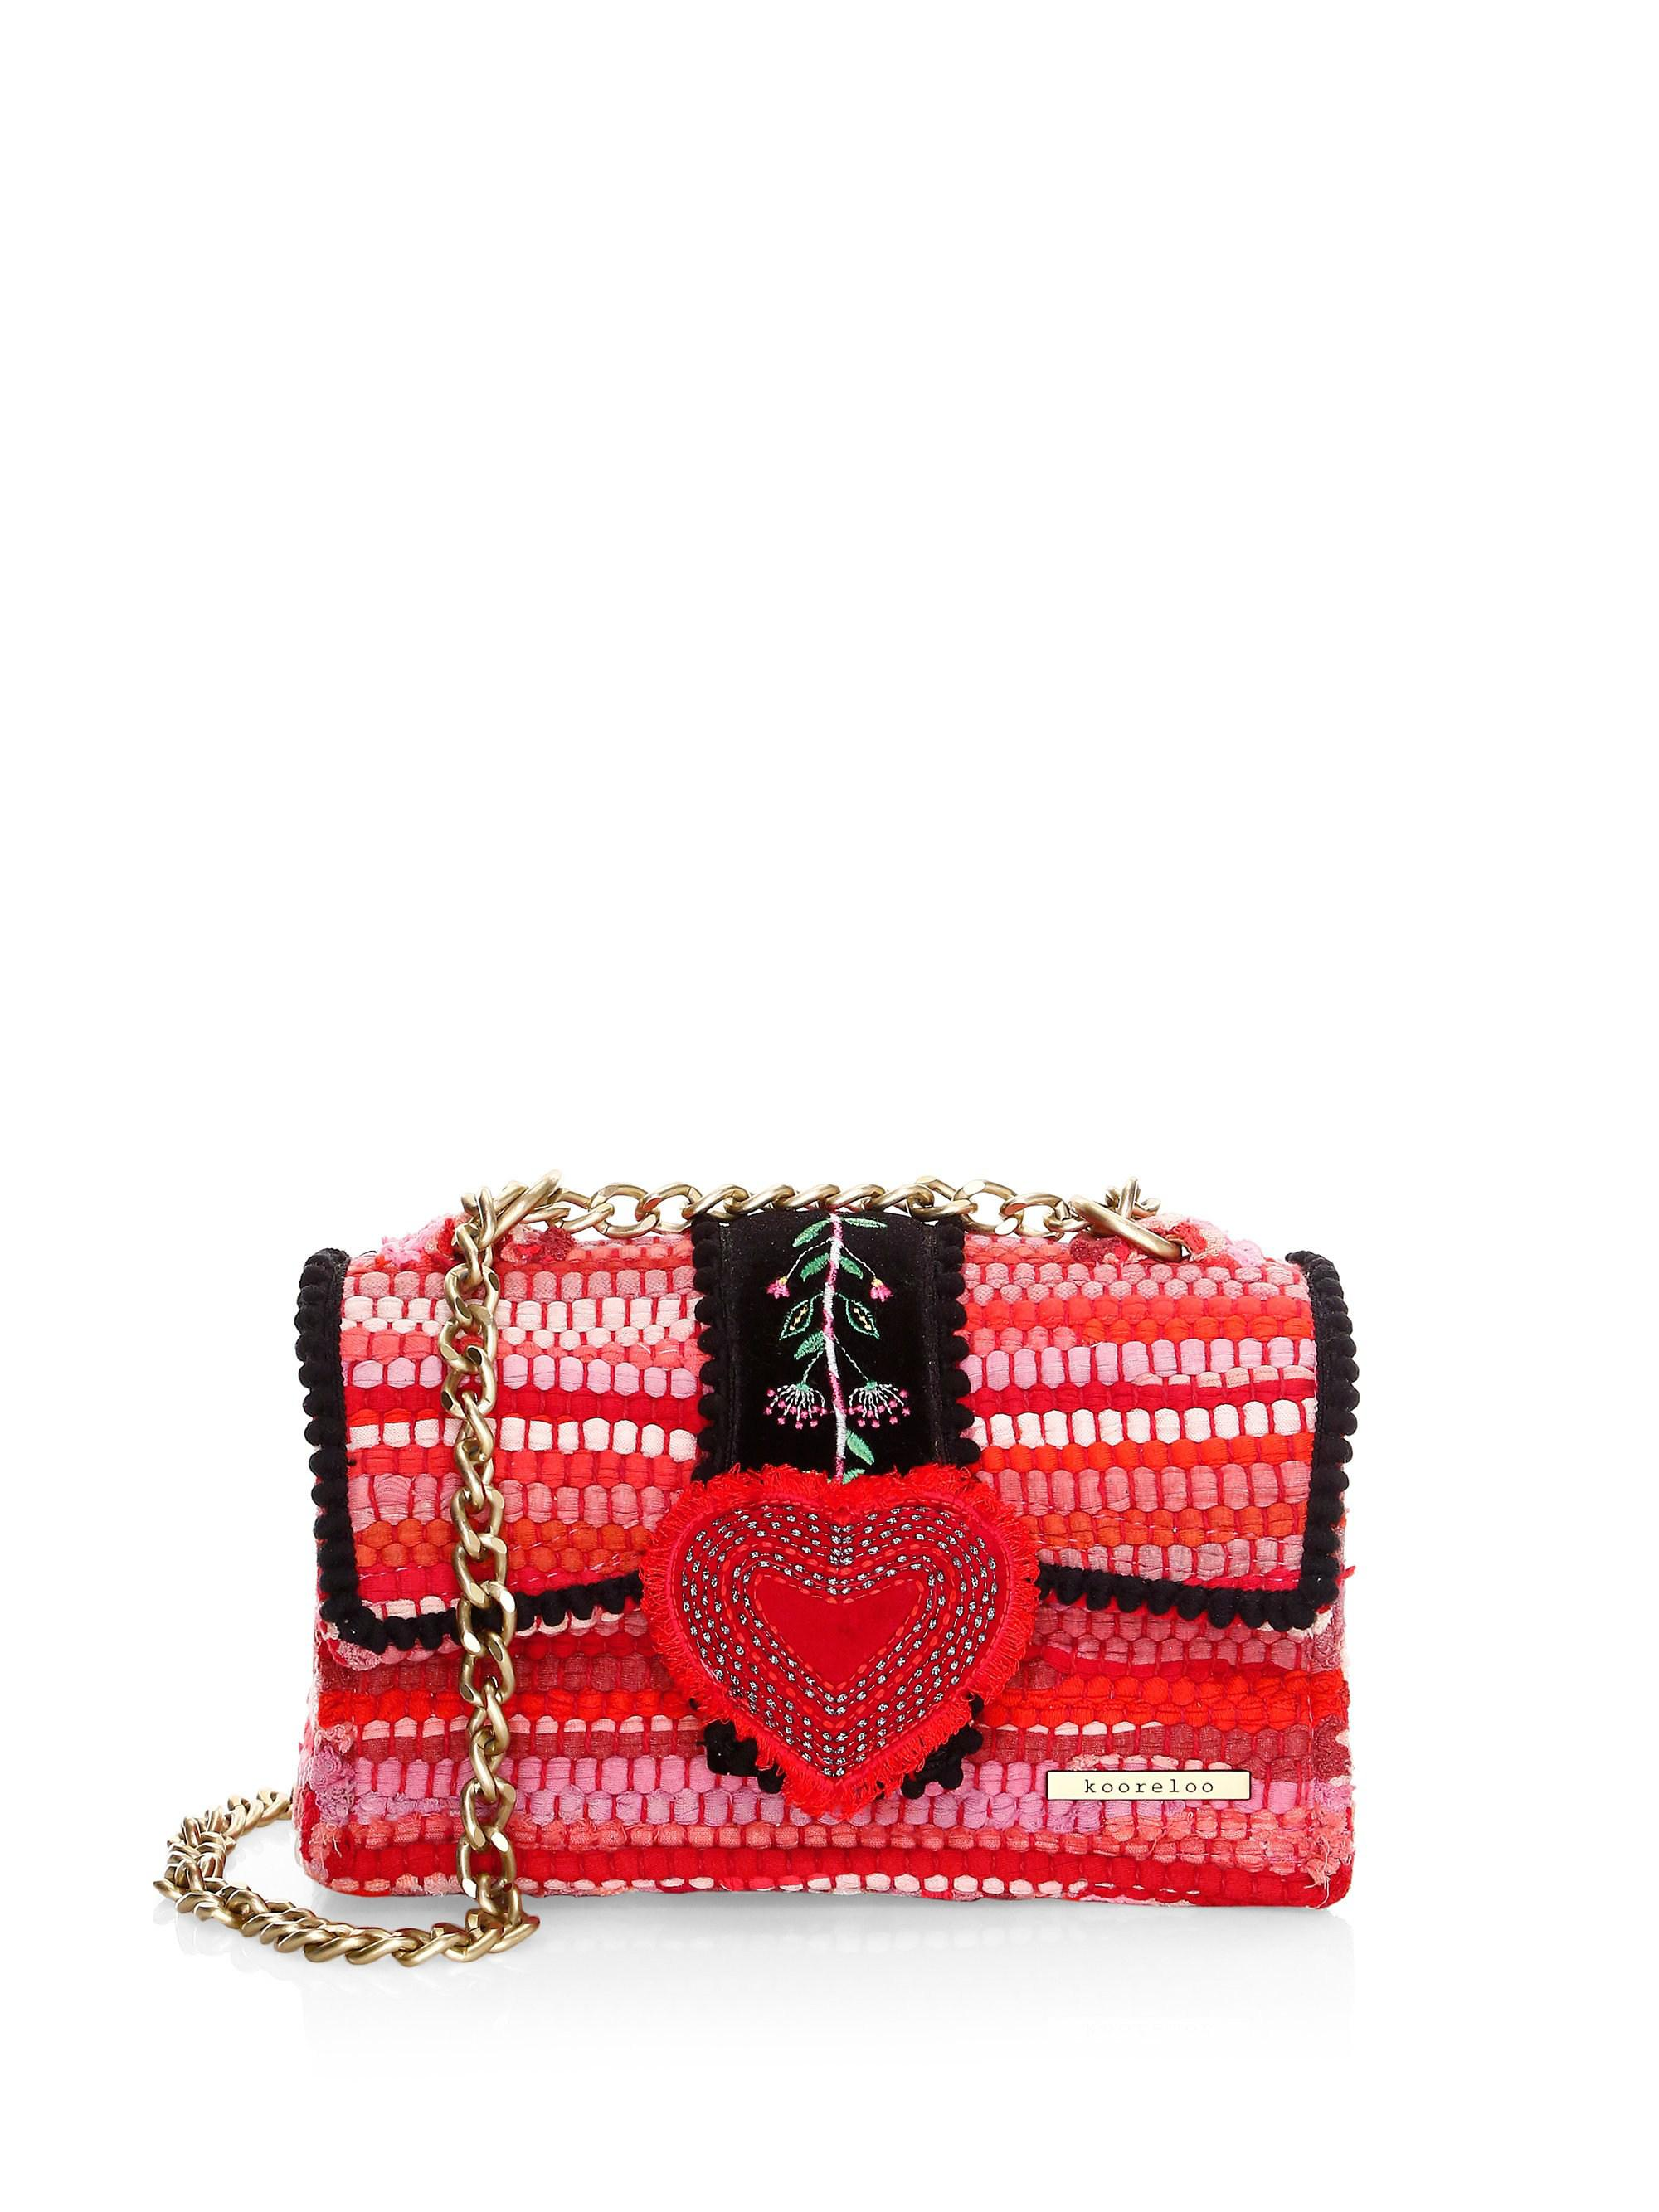 Lyst - Kooreloo Divine Petite Embroidered   Woven Chain Crossbody Bag 295fd86d7b25d